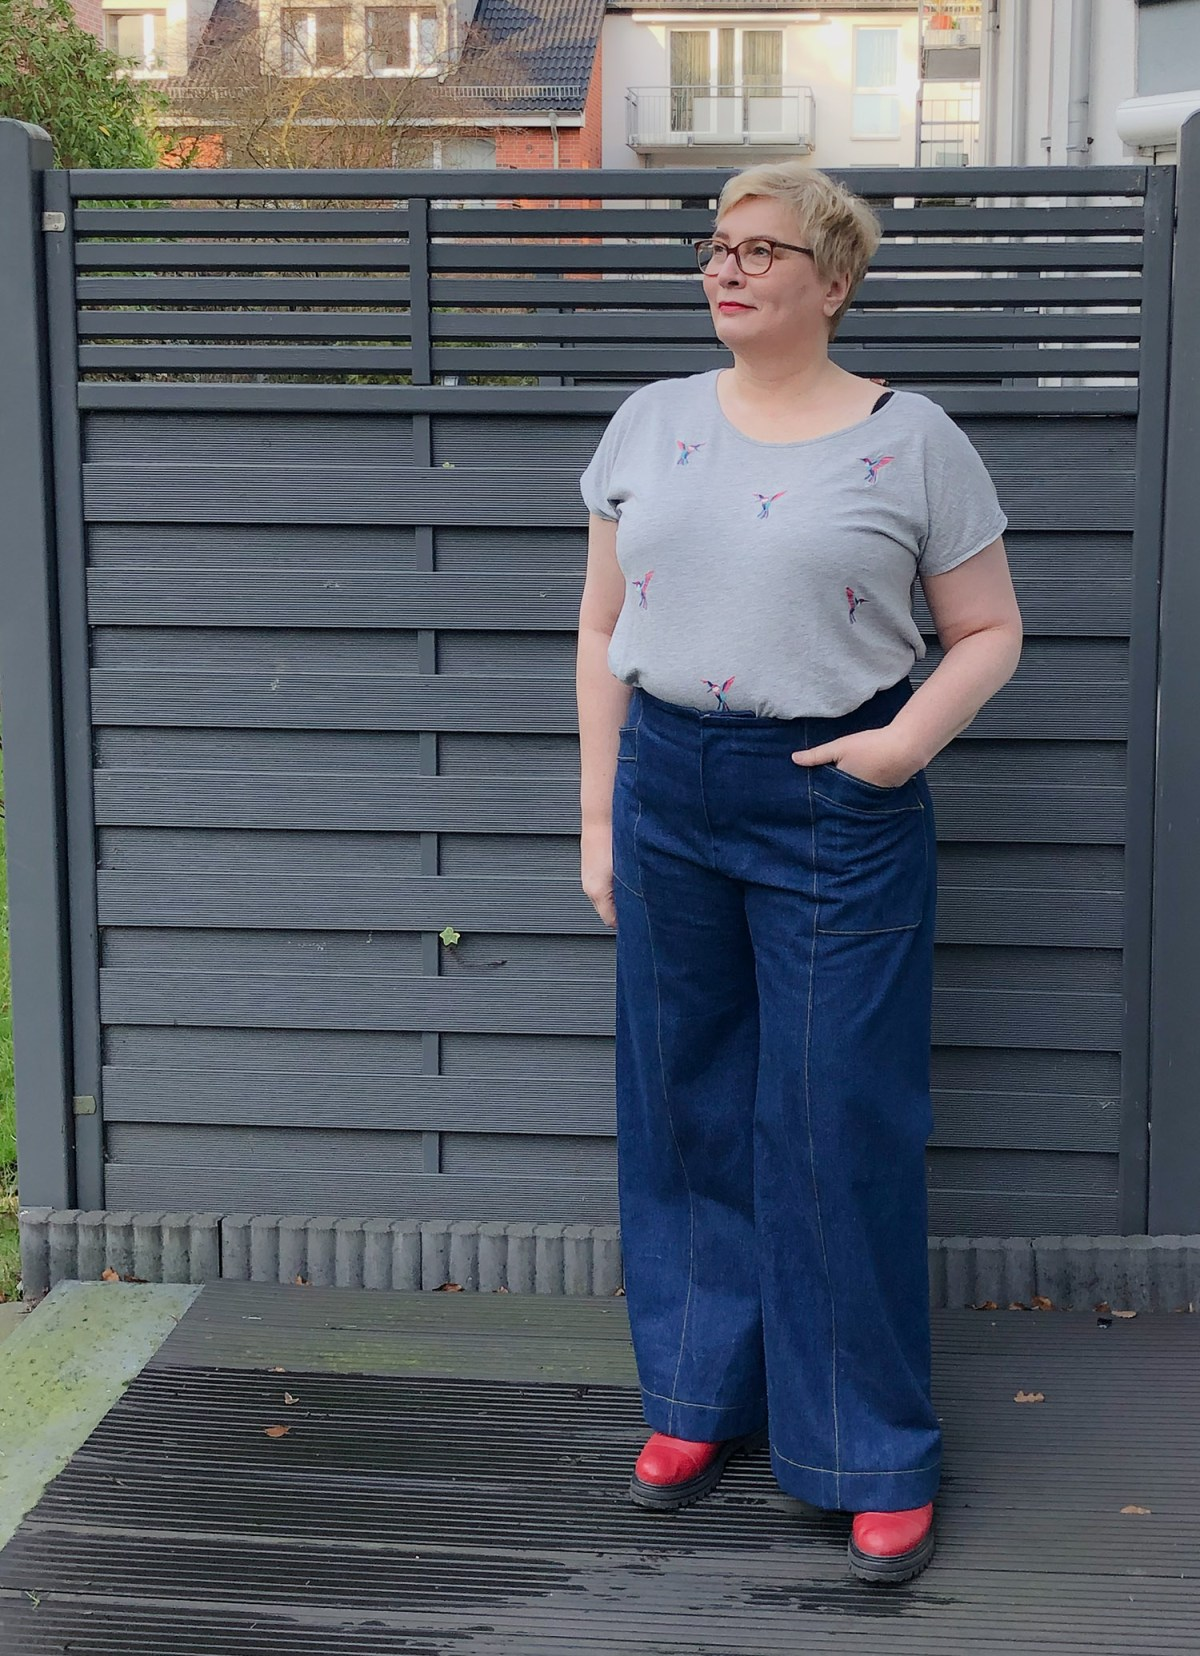 Bianka, a white woman with short blond hair and glasses, models her new wide-legged jeans.